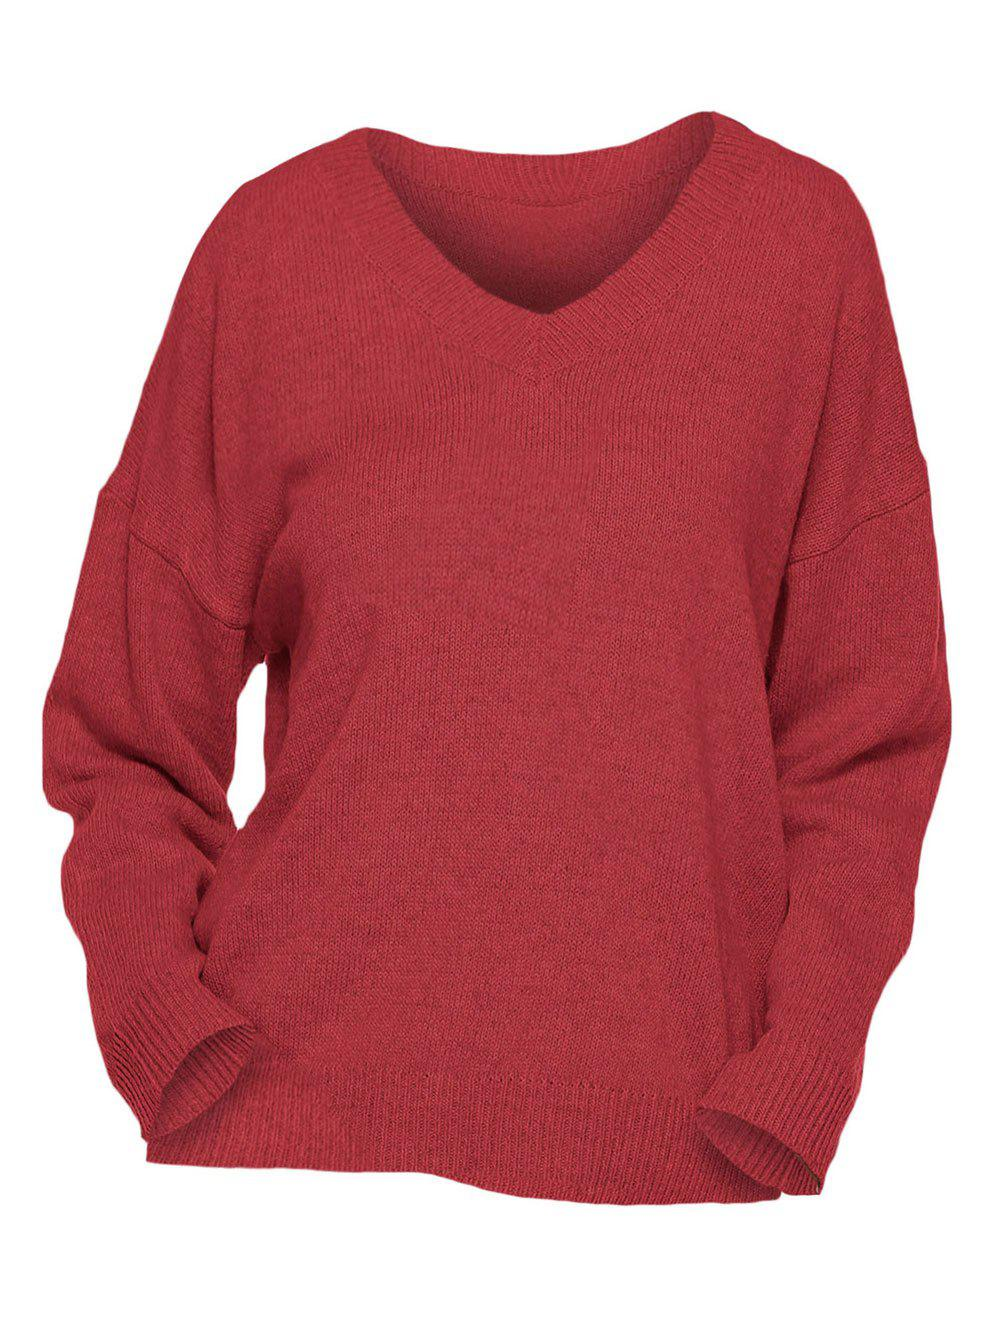 Plus Size Drop Shoulders V Neck Sweater - RED 1X